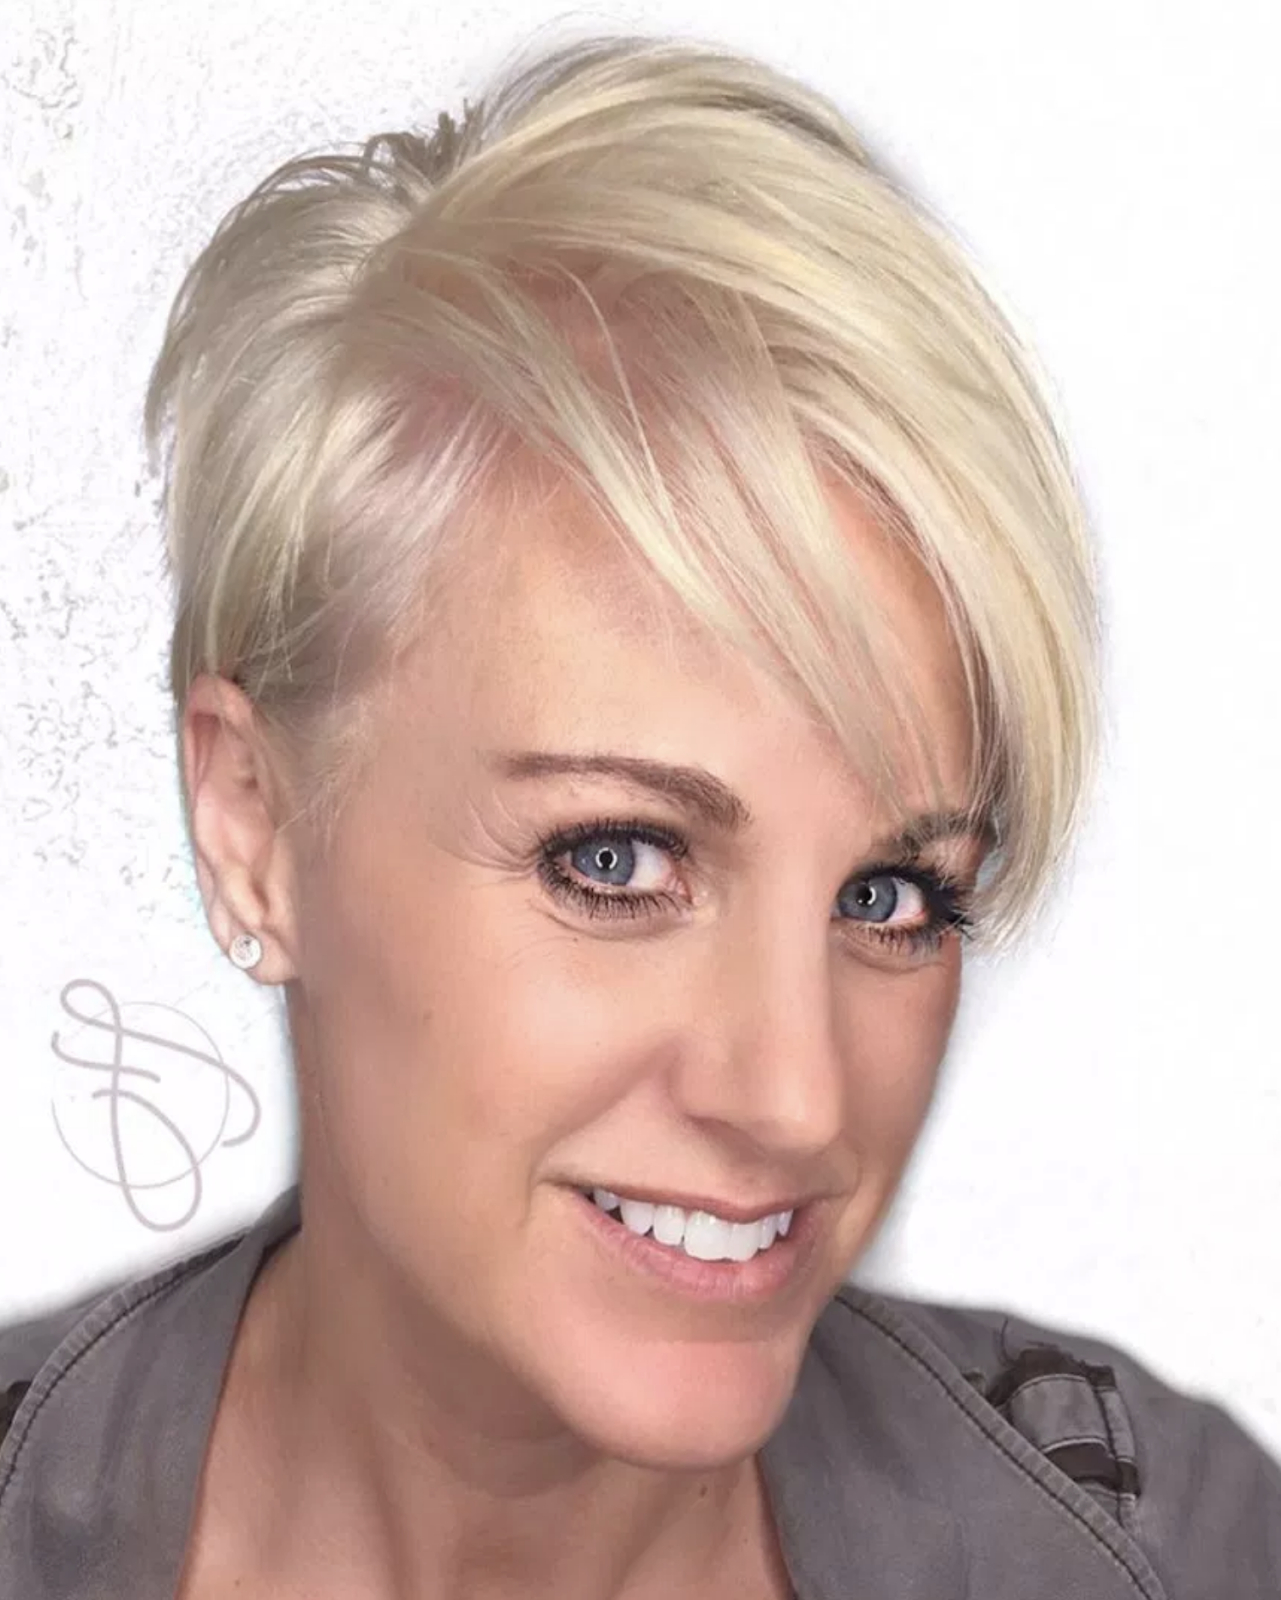 Latesthairstylepedia: Short Hairstyles For Women Over 40 Pertaining To Short Hairstyles For Over 40 Year Old Woman (View 20 of 25)